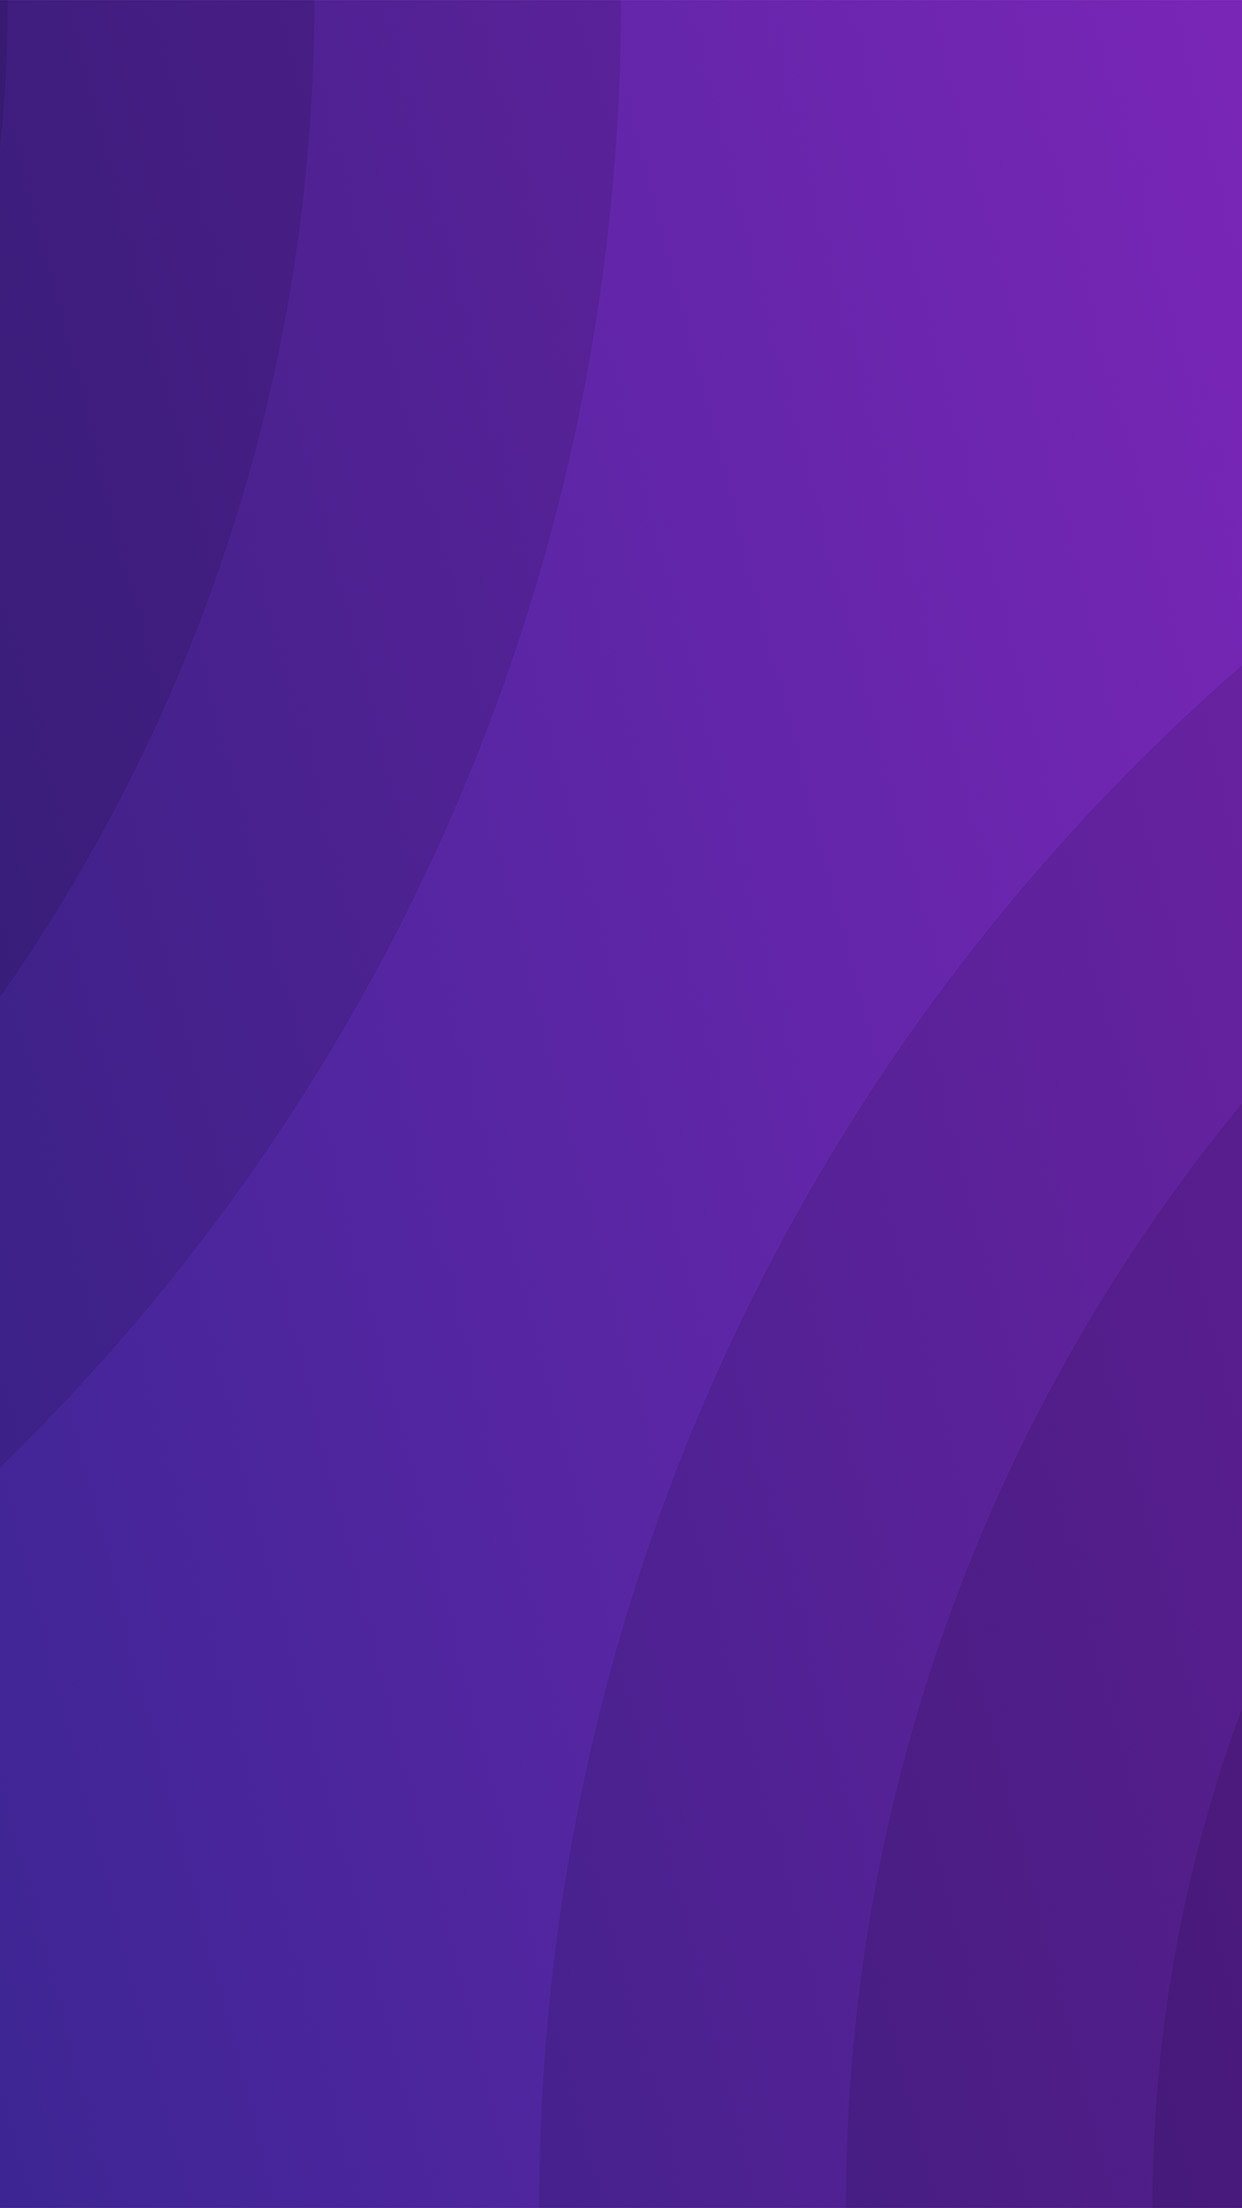 Cute Hd Wallpapers For Phone Vy67 Circle Blue Purple Simple Pattern Background Wallpaper